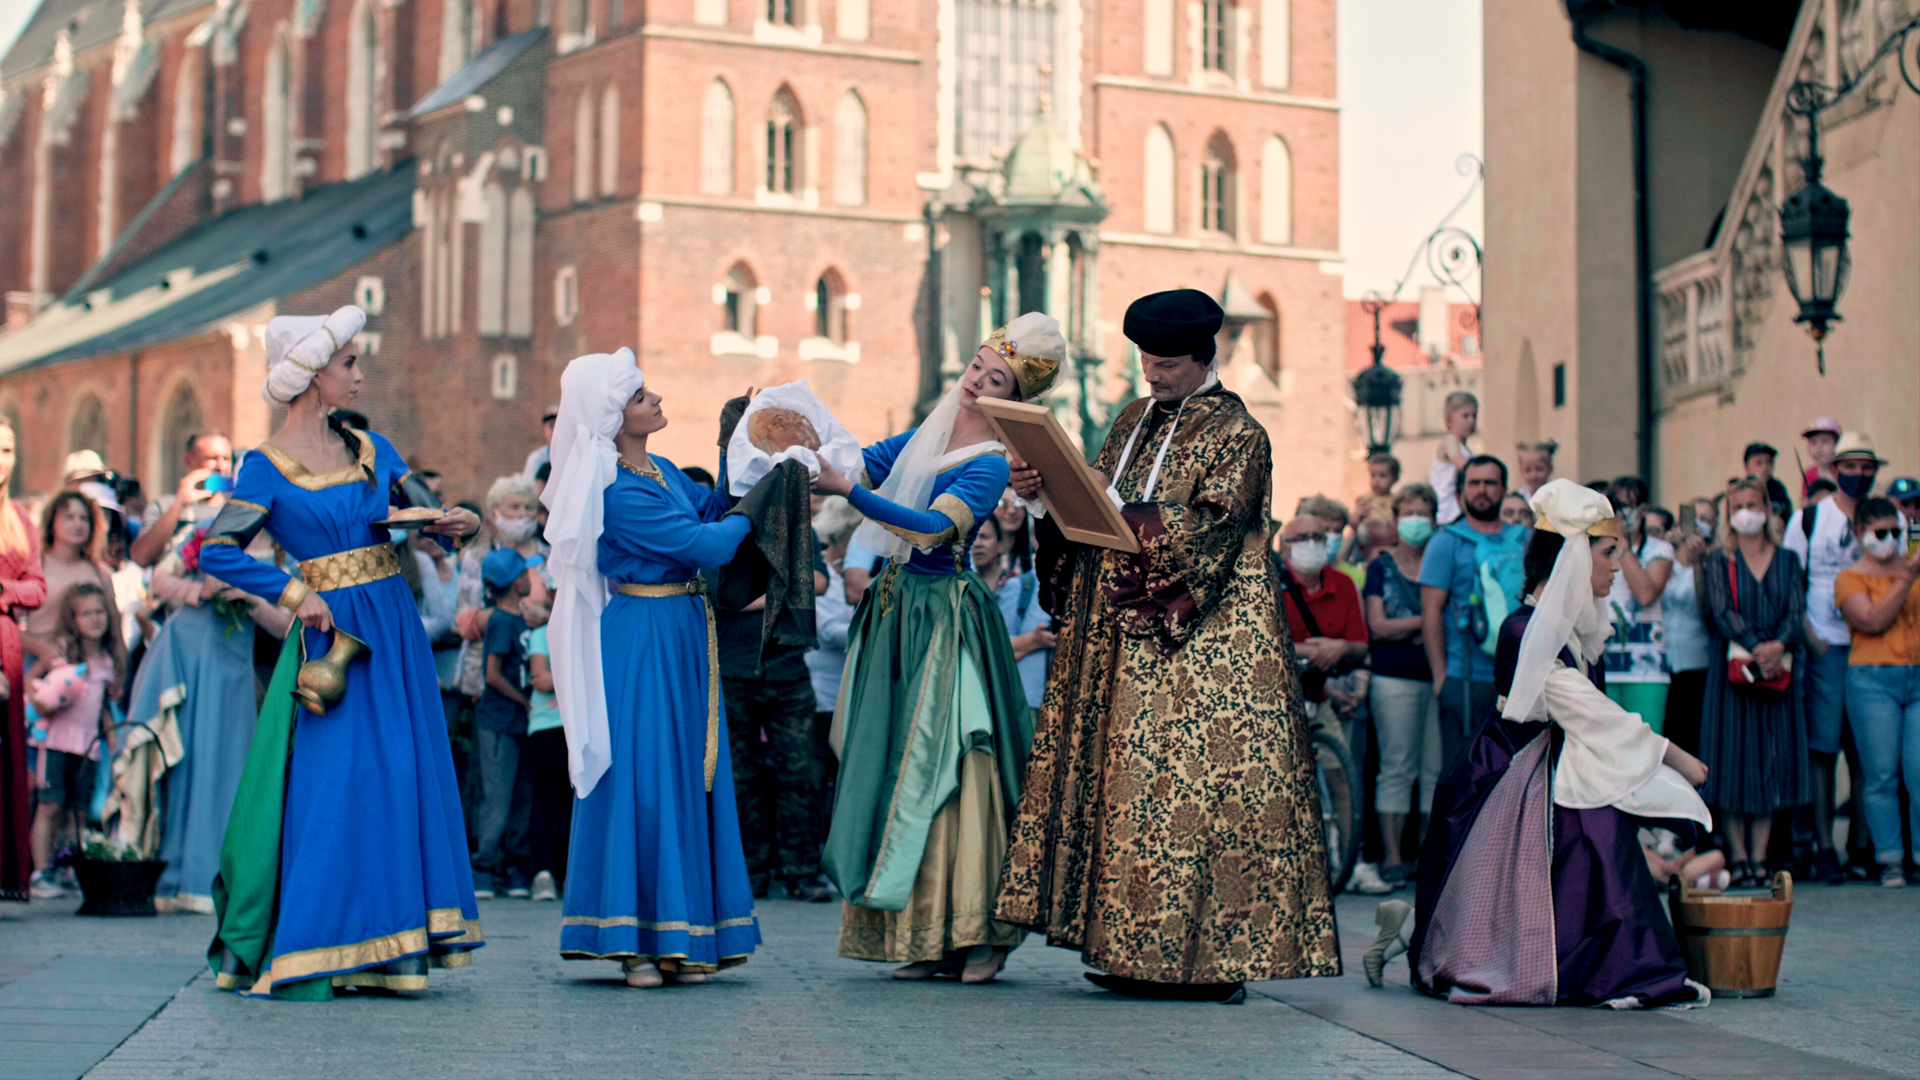 KRAKOW PAINTED WITH DANCE